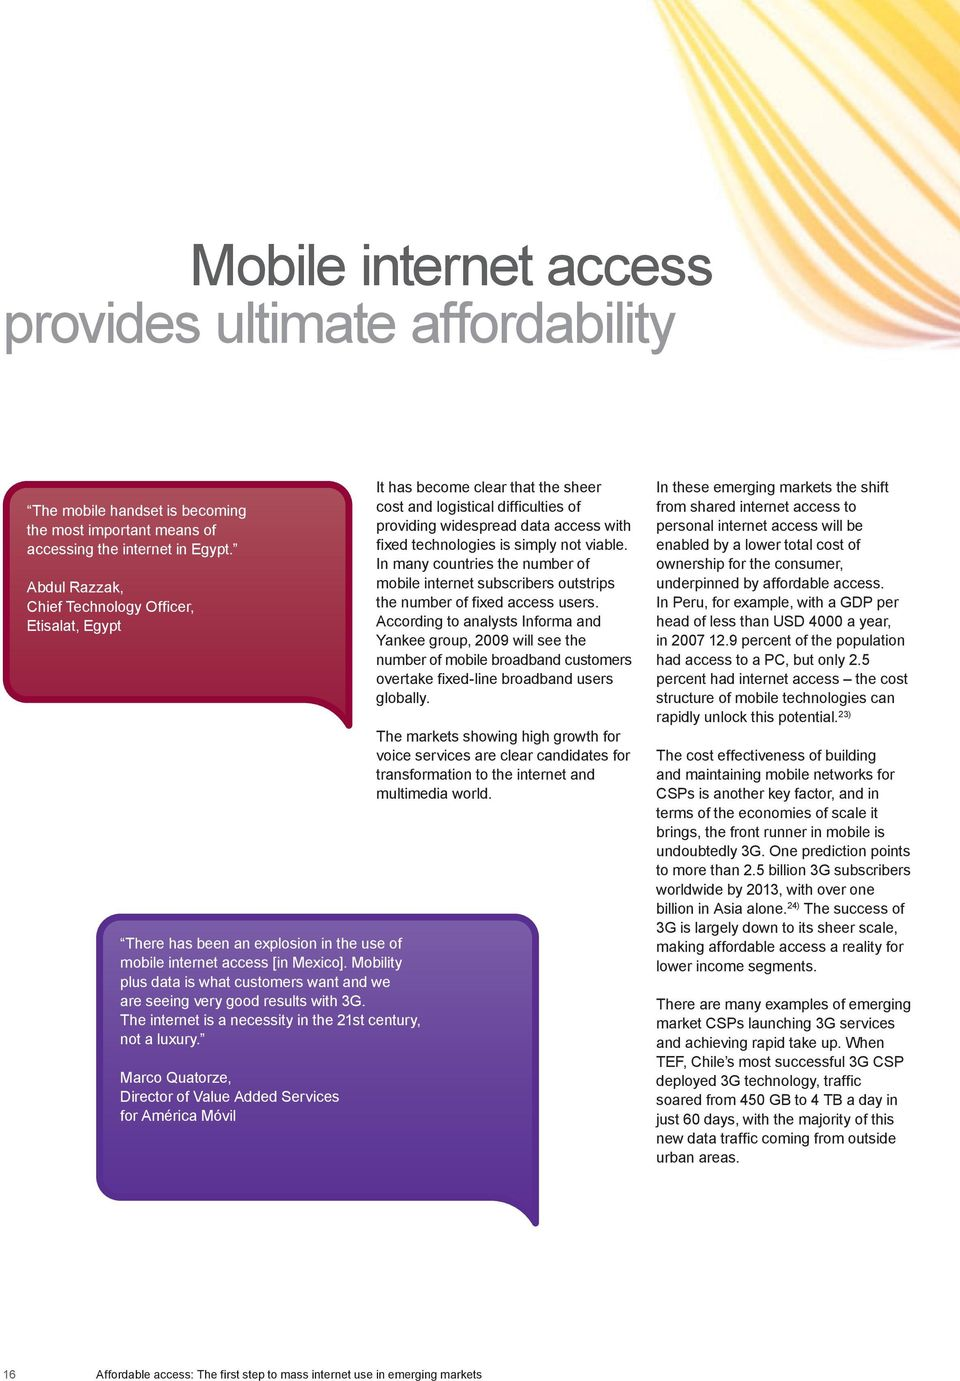 Mobility plus data is what customers want and we are seeing very good results with 3G. The internet is a necessity in the 21st century, not a luxury.